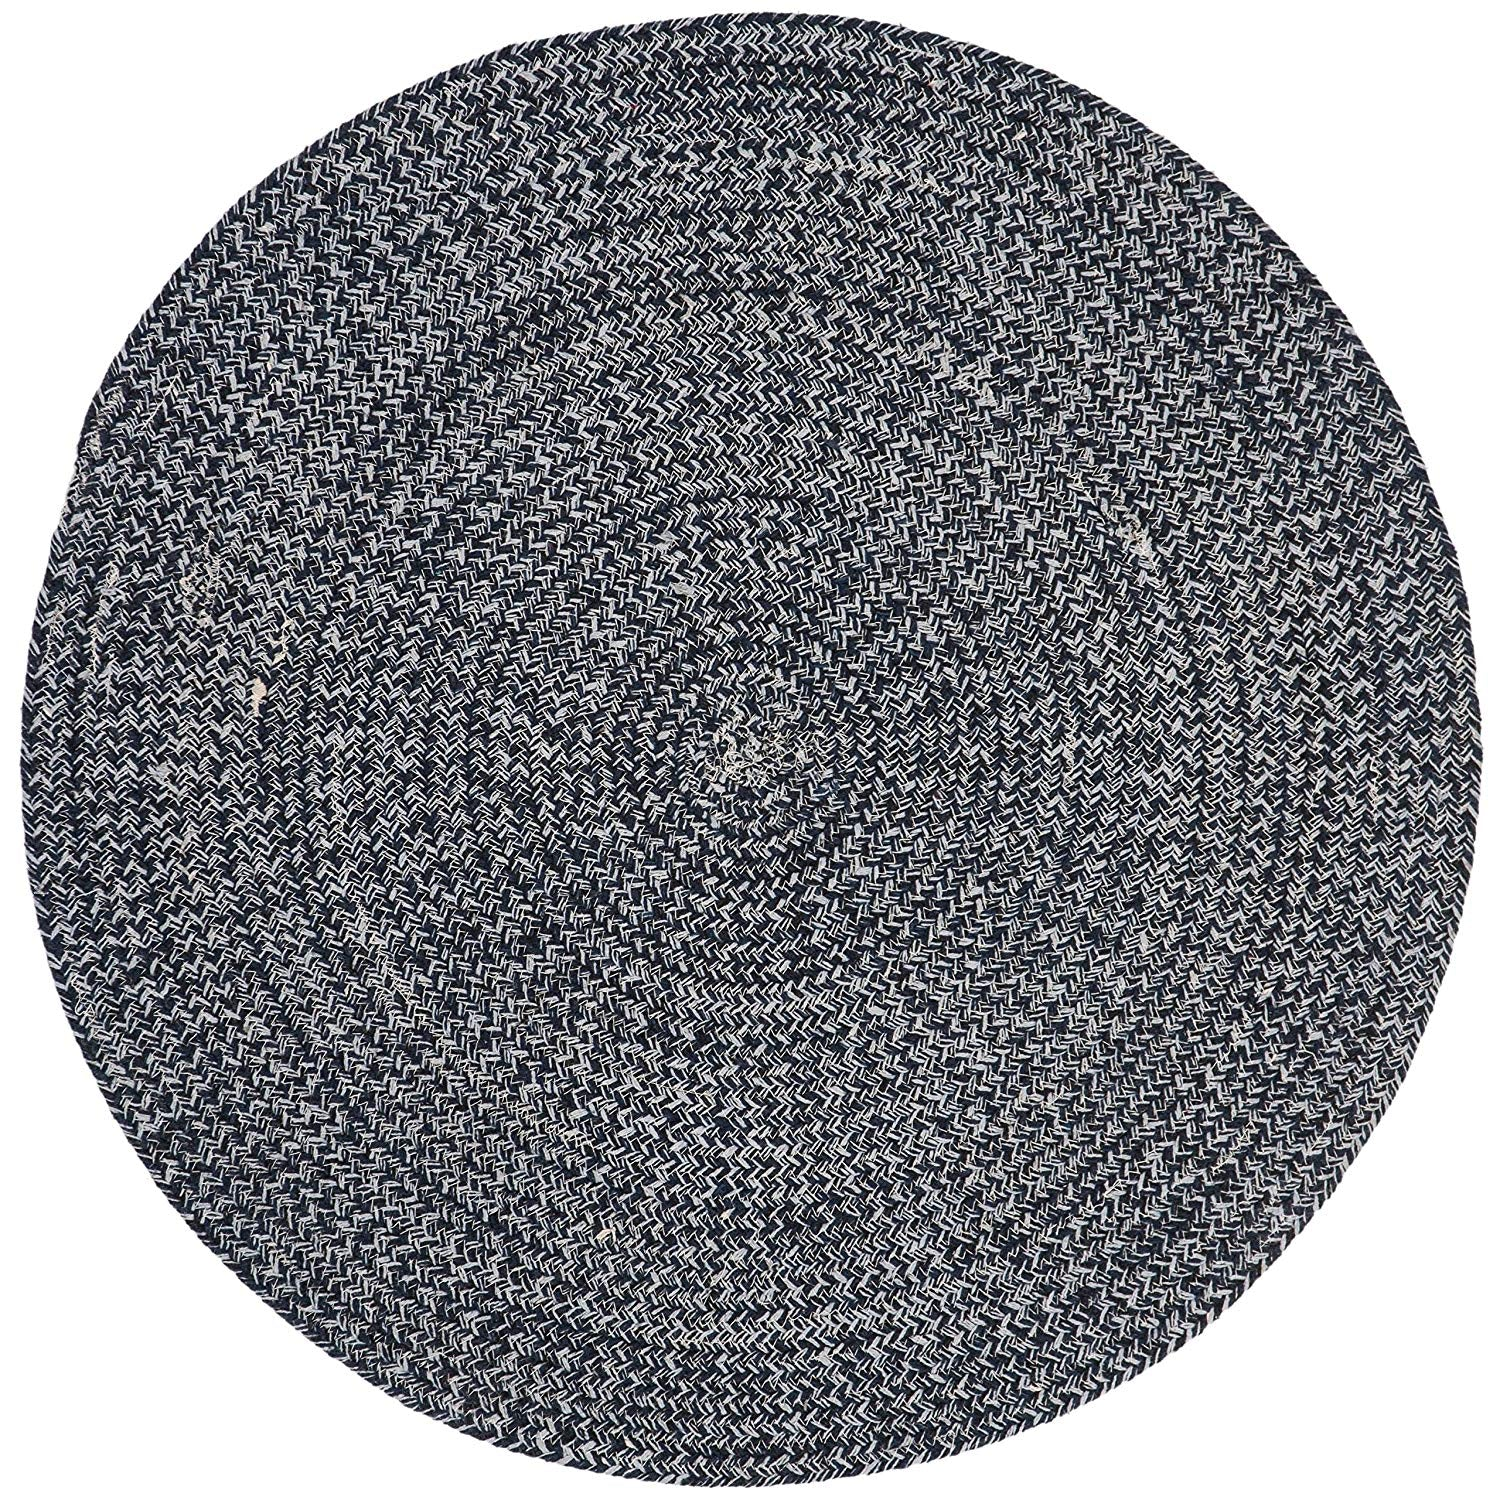 3ft Braided Circular Rug Navy Ivory Braid Weave Round Area Rug Dark Blue Off White Indoor Carpet Country Farmhouse Theme Circle Floor Mat Bedroom